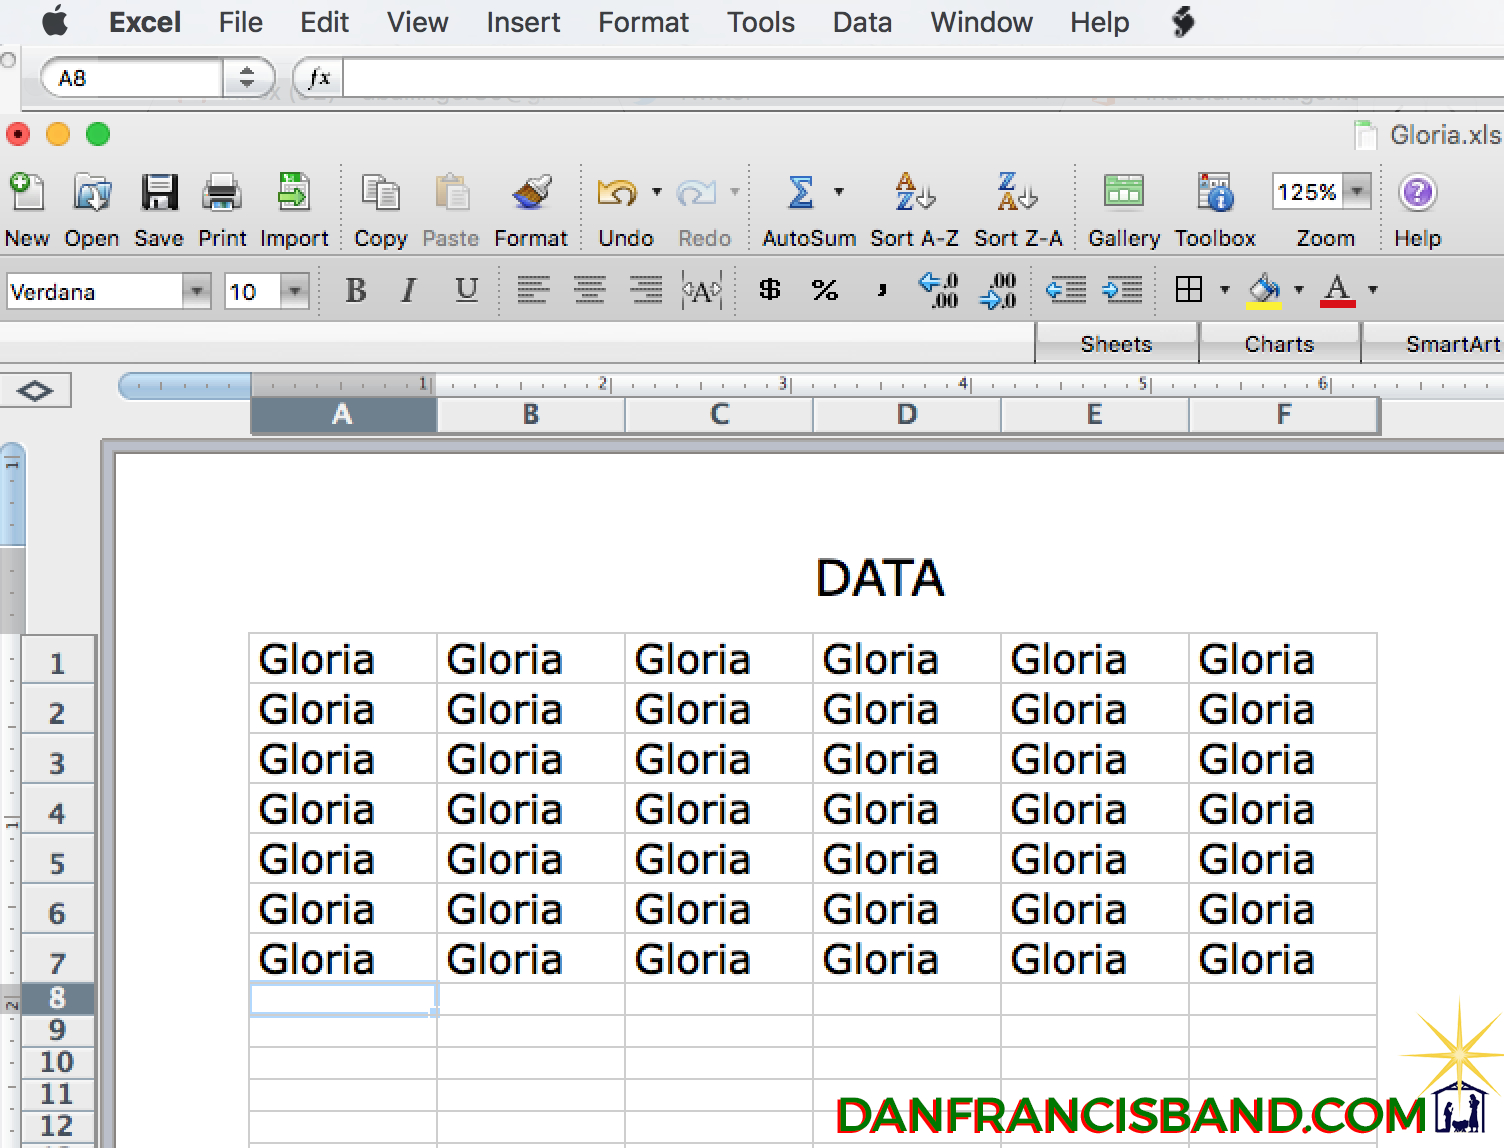 Excel Spreadsheet Meme In Gloria In Excel Sheet's Data  Imgur